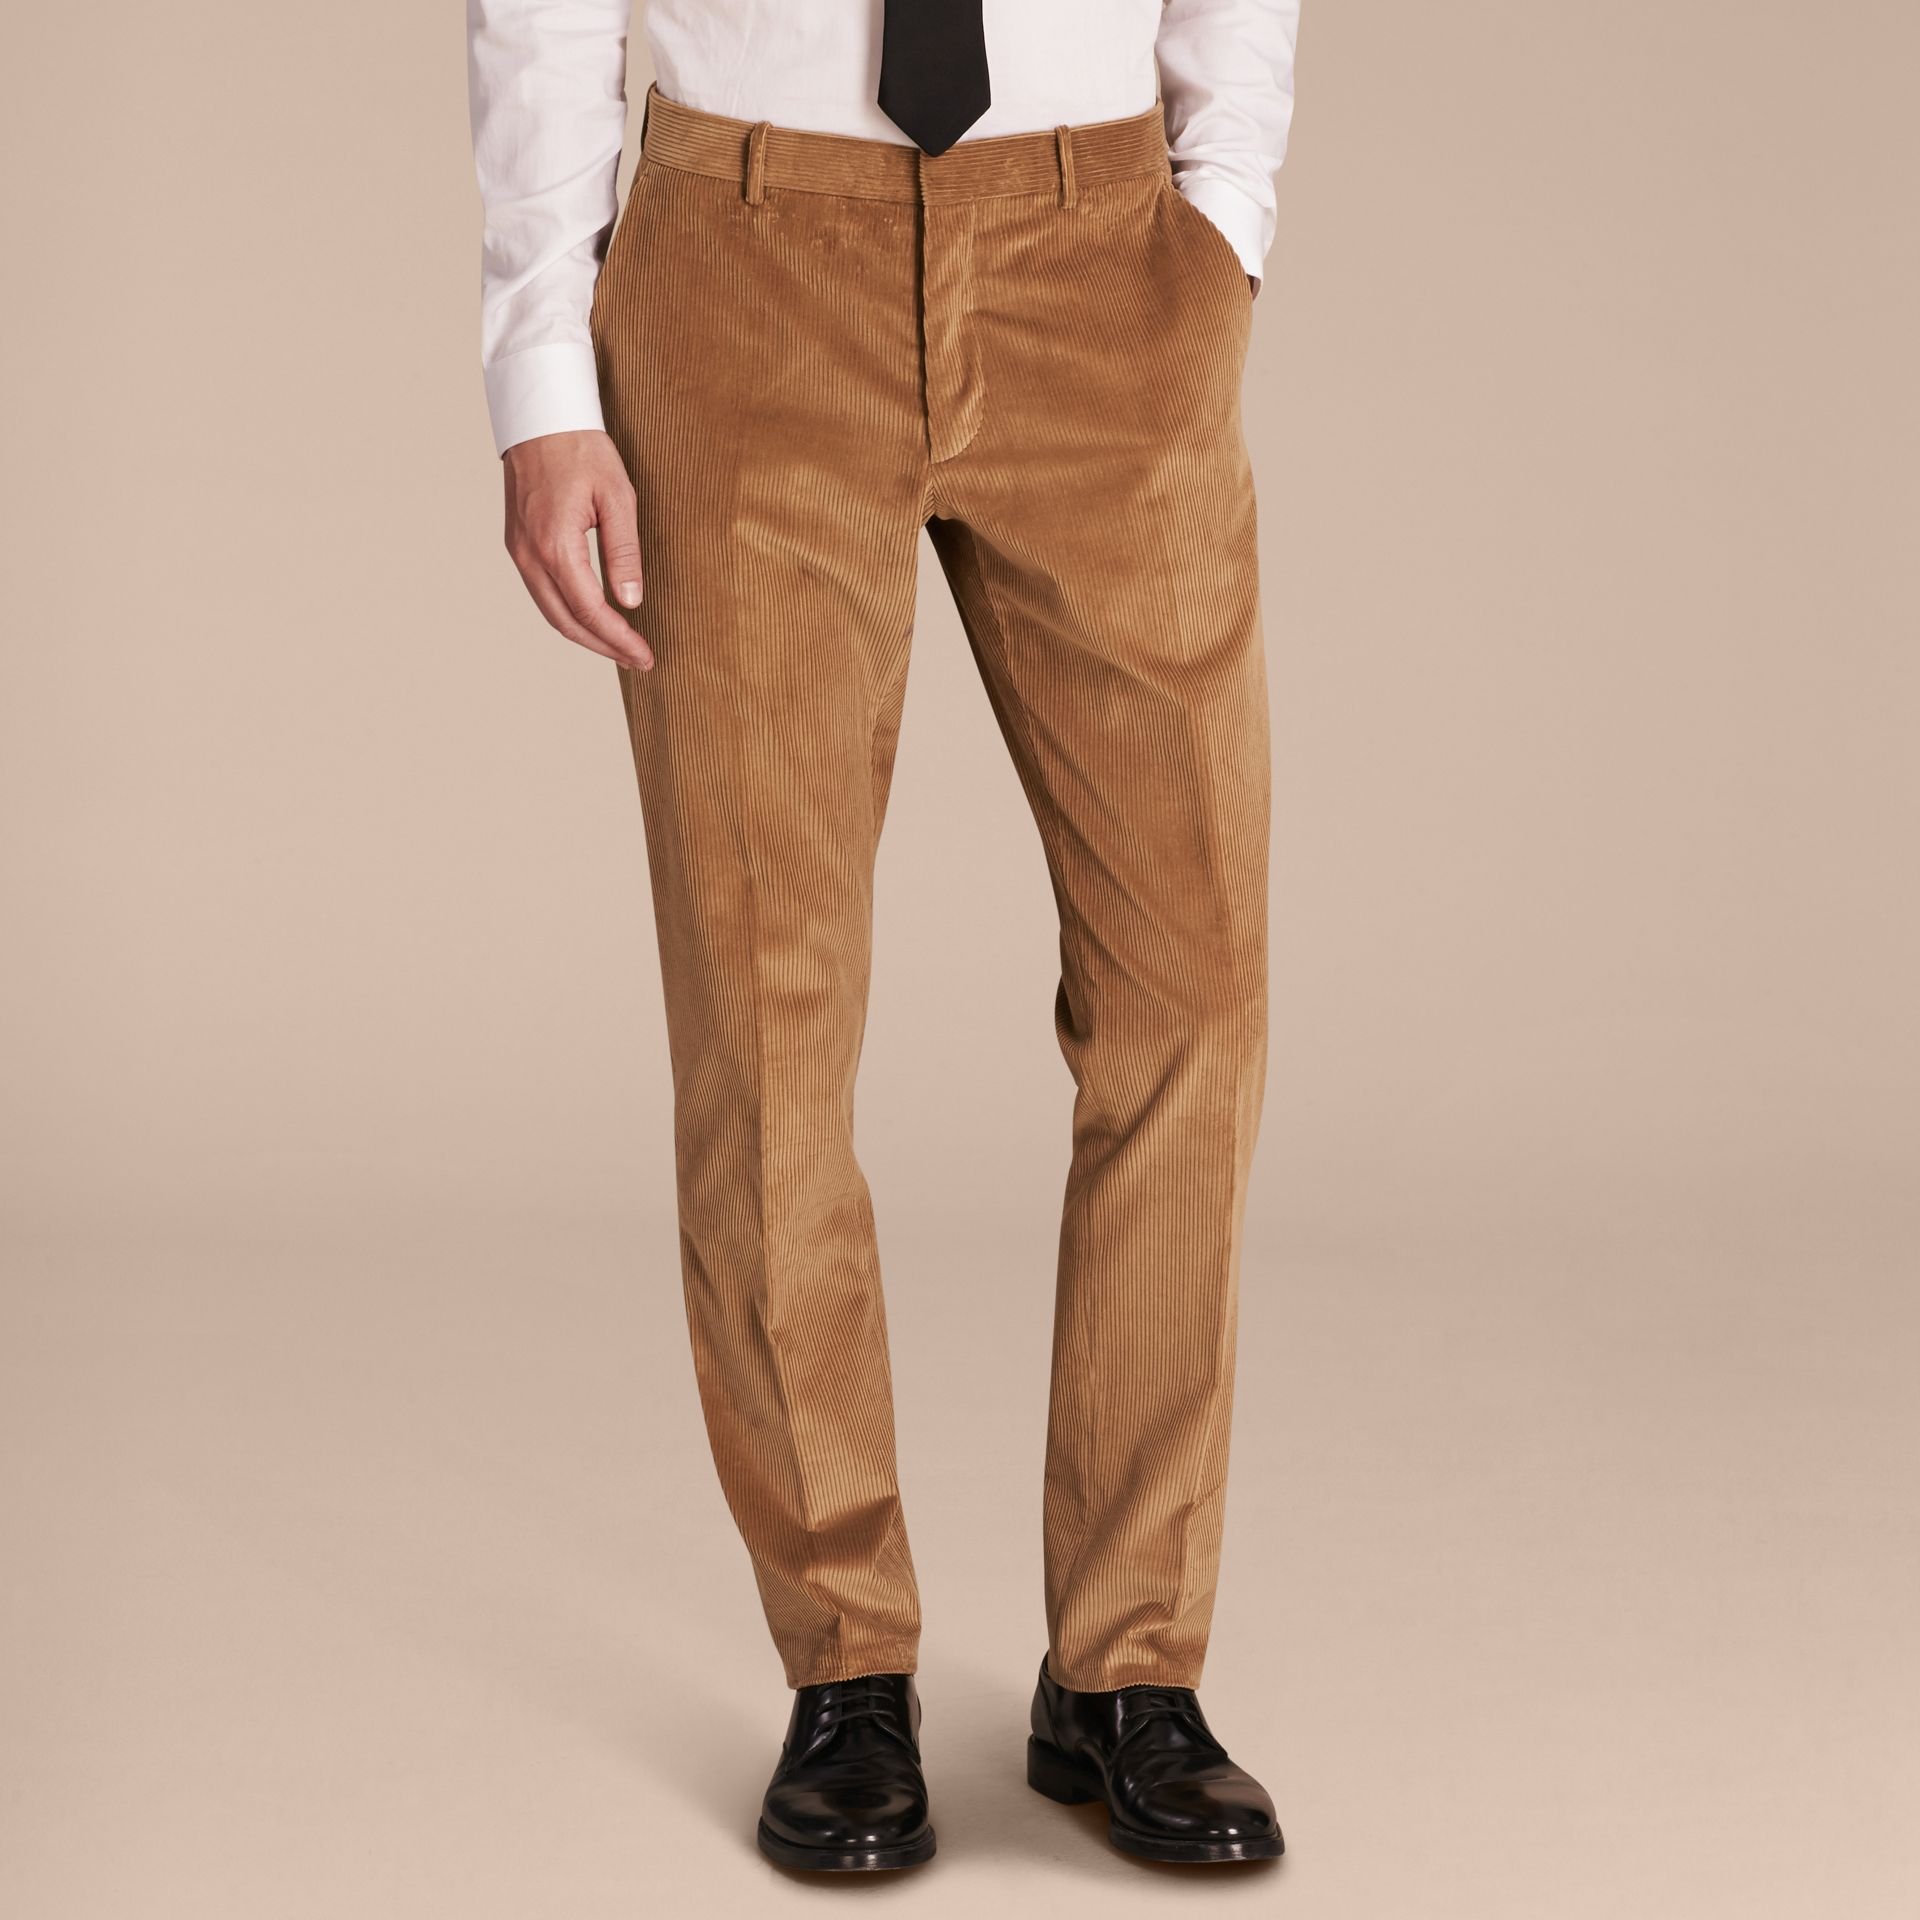 Camel Slim Fit Cotton Corduroy Trousers Camel - gallery image 6